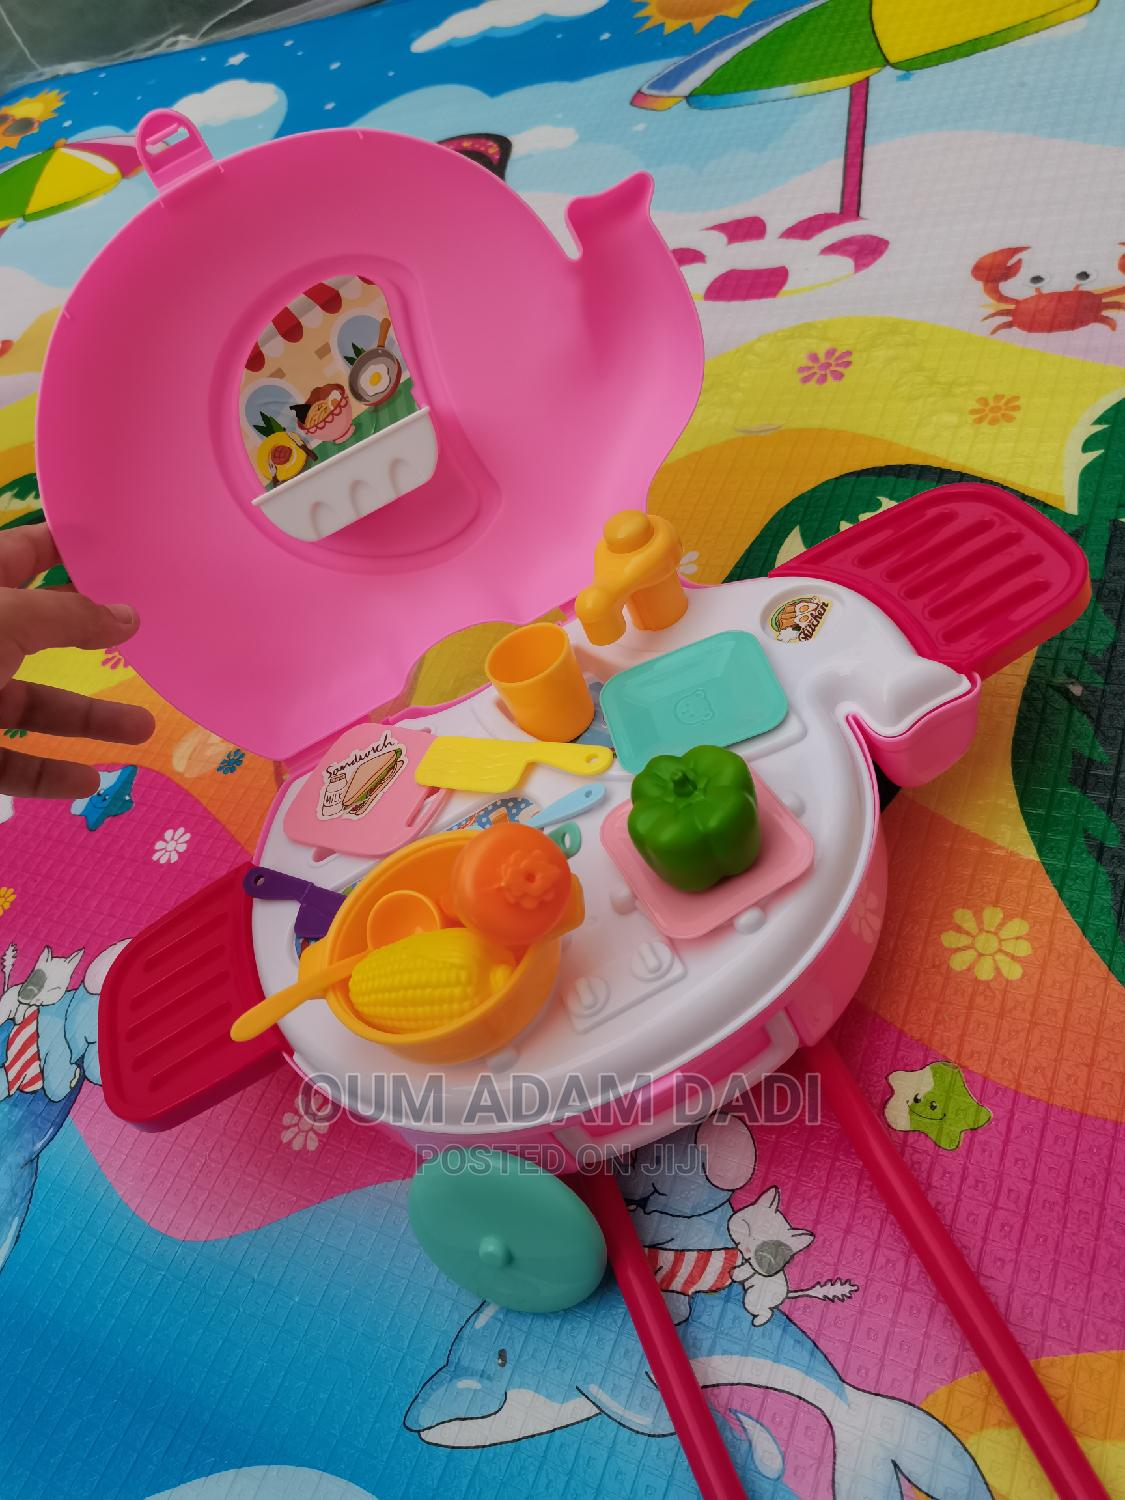 Archive: Toys for Kids